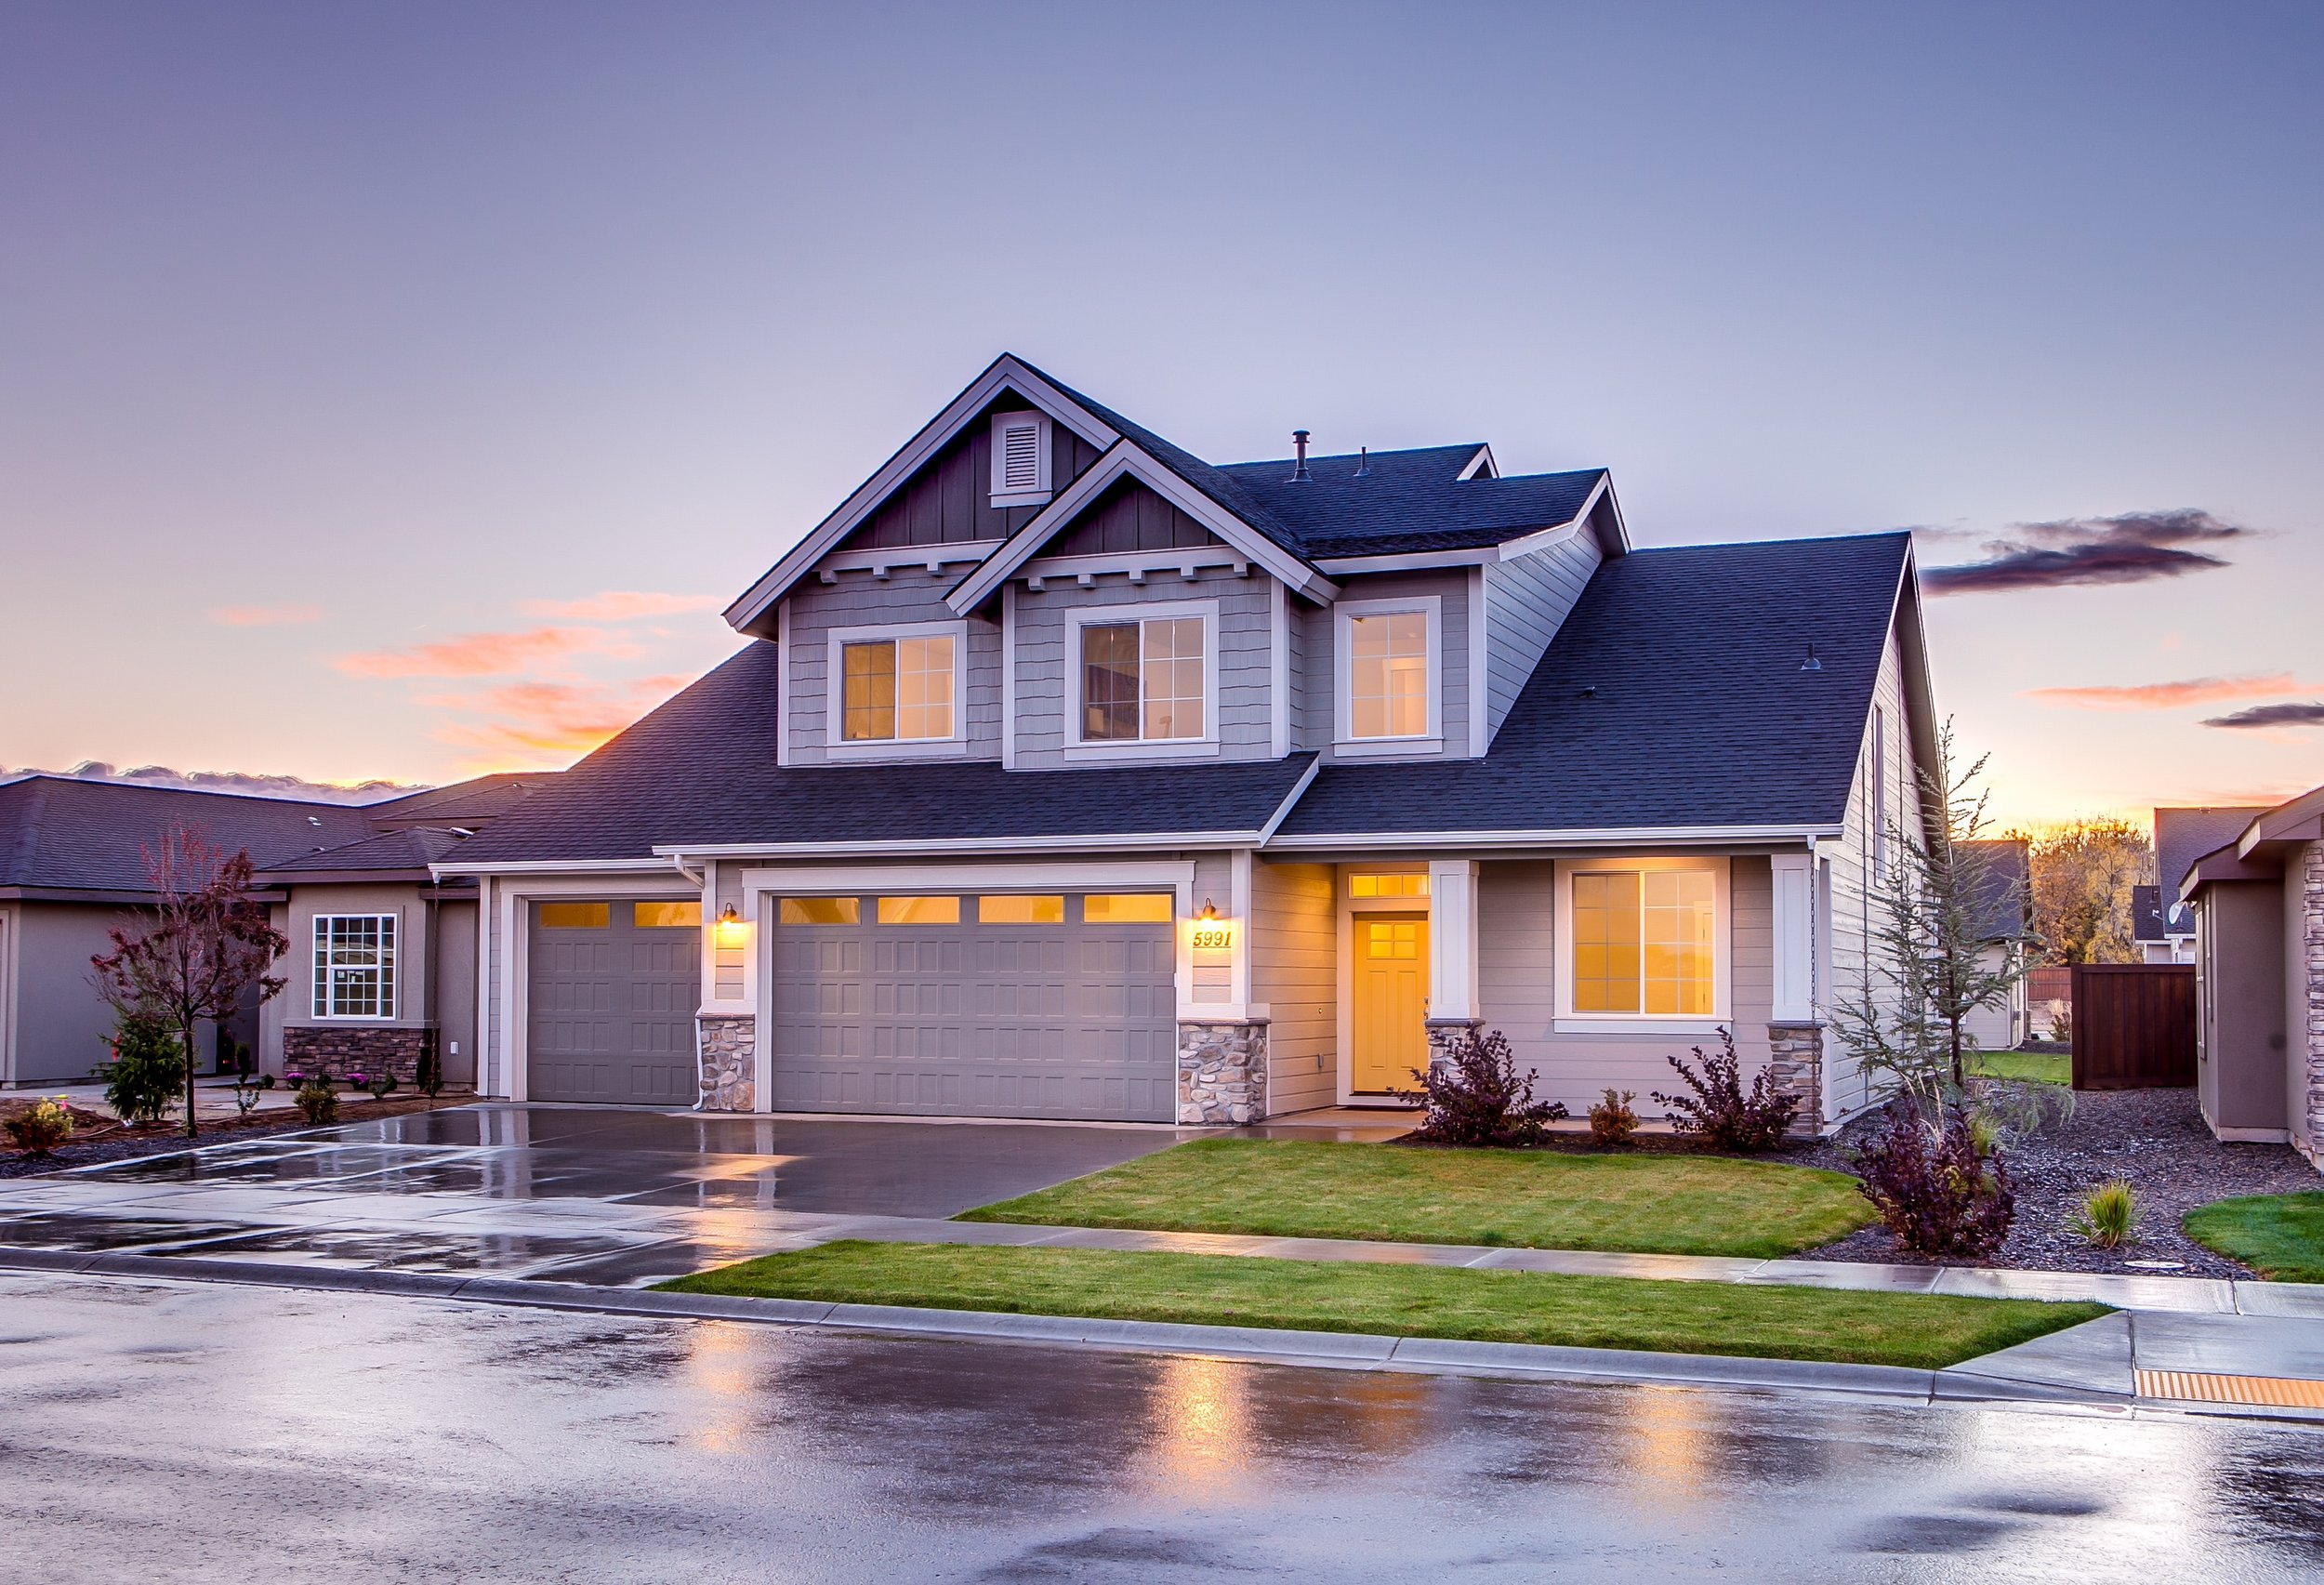 Save $500.00 - On Residential Roofing Projects